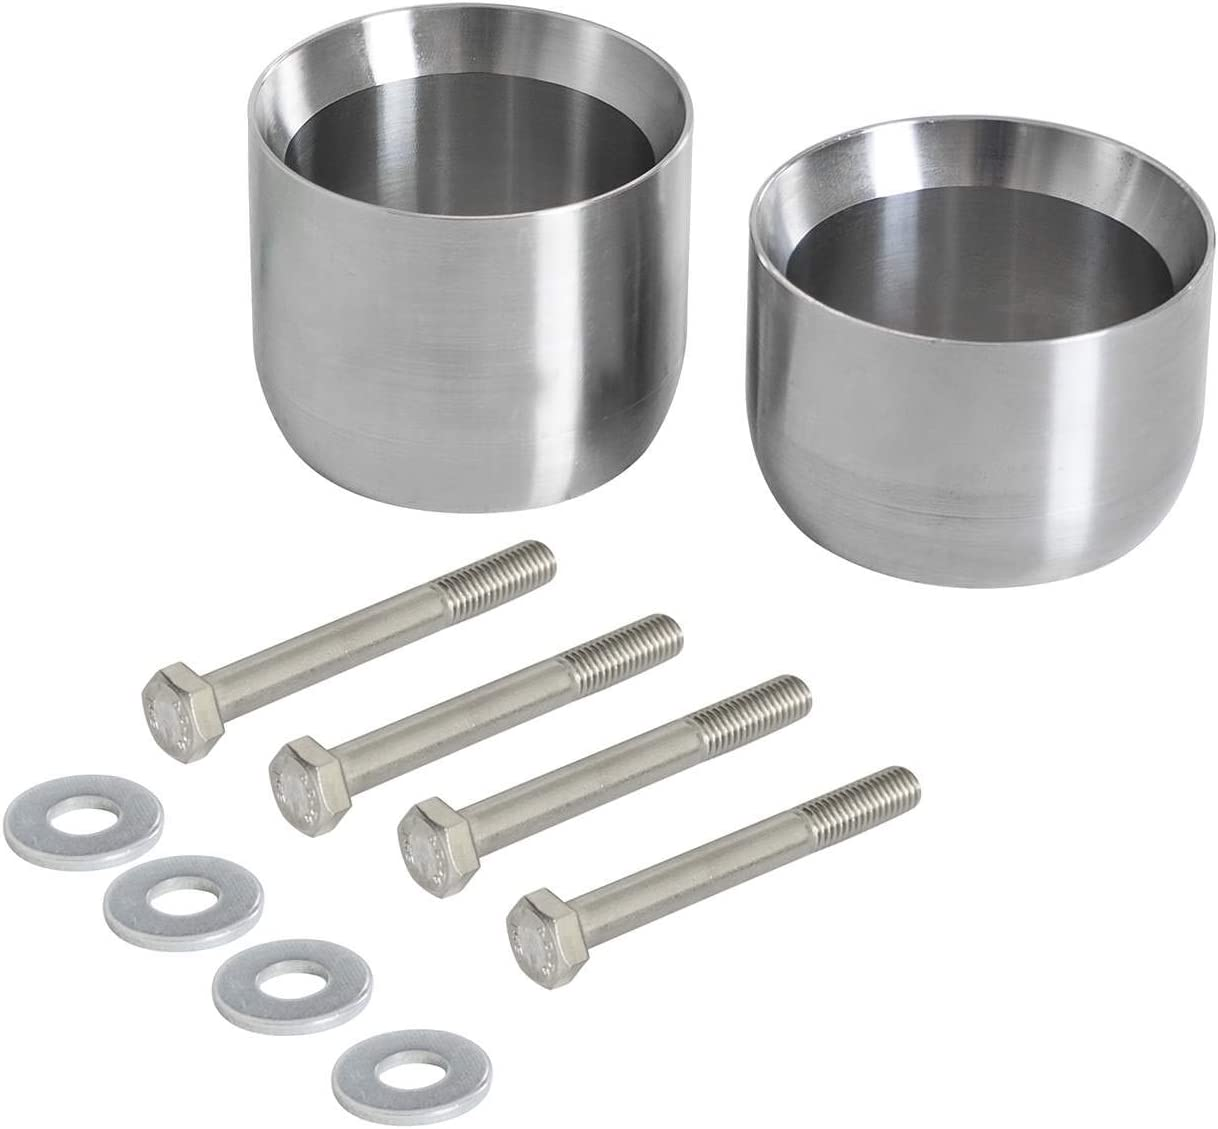 aFe Power 48-90002 Stainless Steel Y-Pipe Spacer Kit 1 Pack